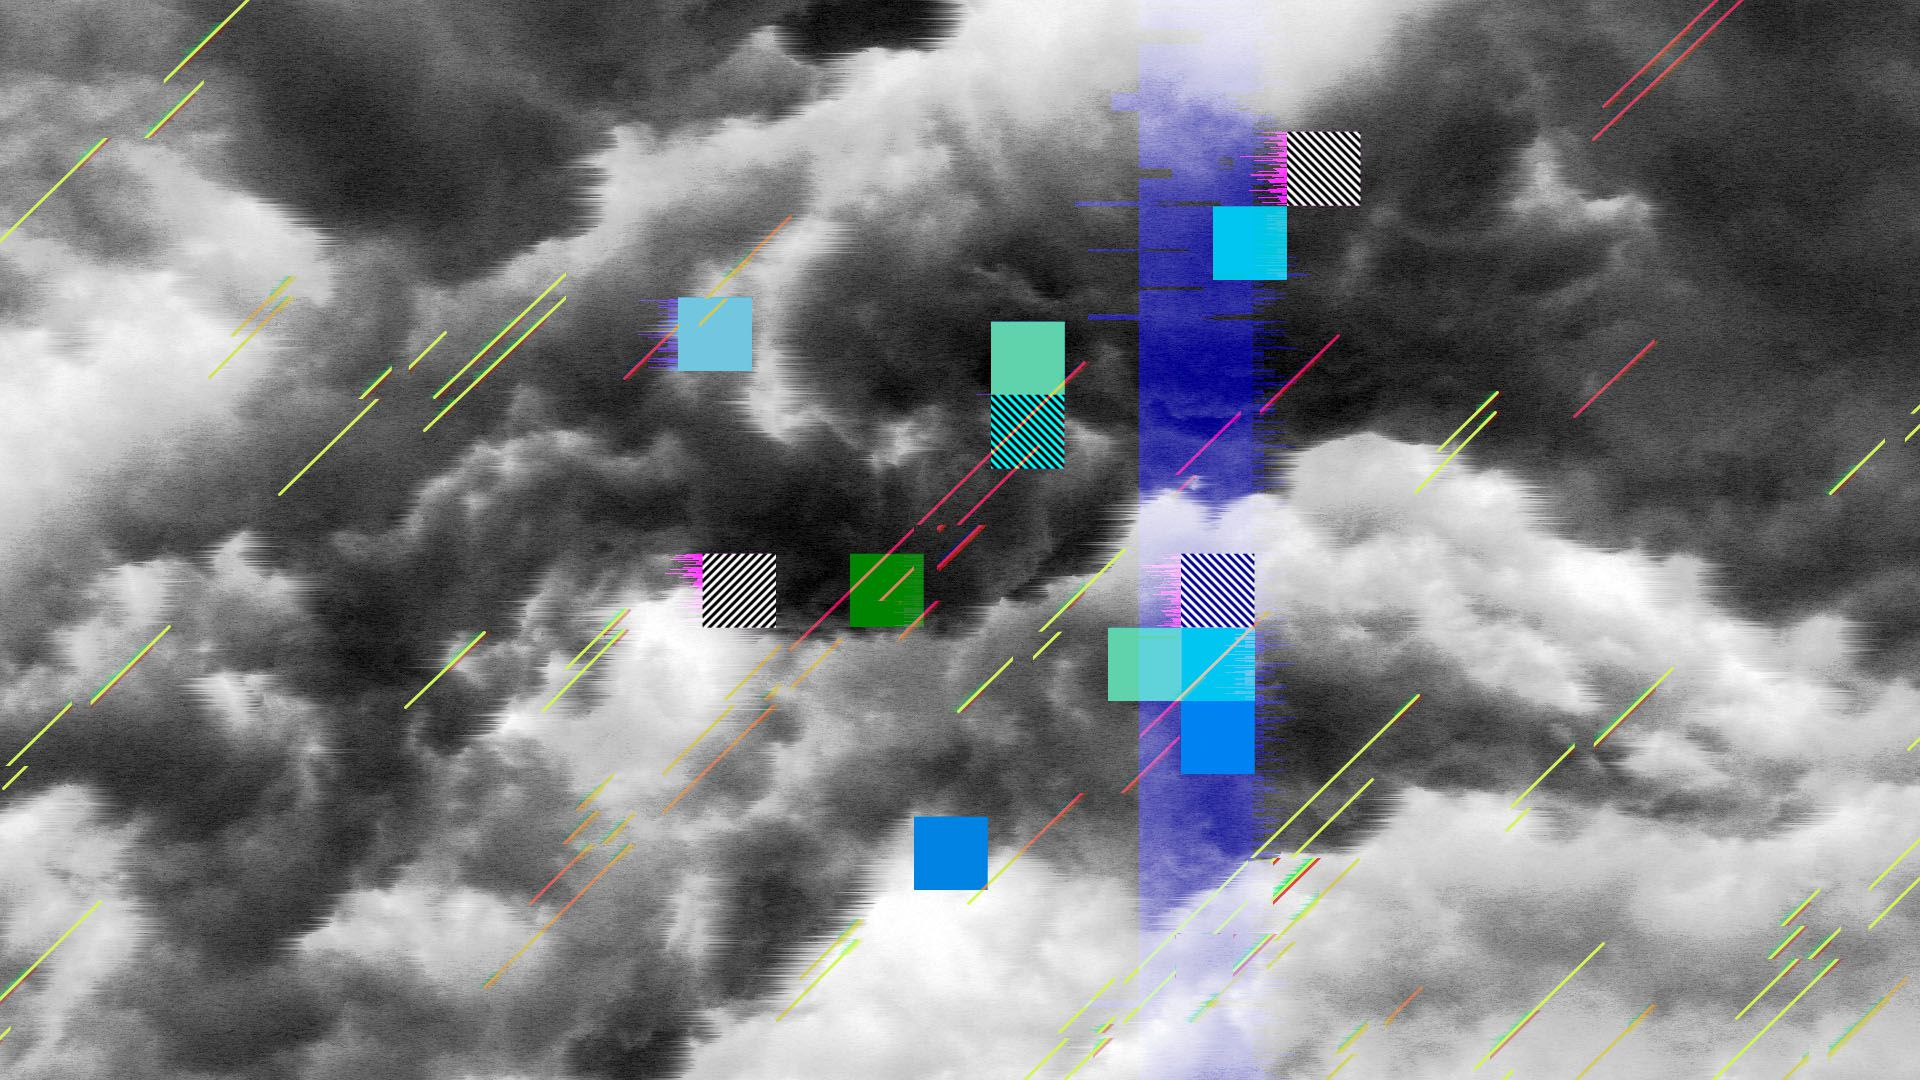 Illustration of a storm cloud interrupted by cubes and glitches